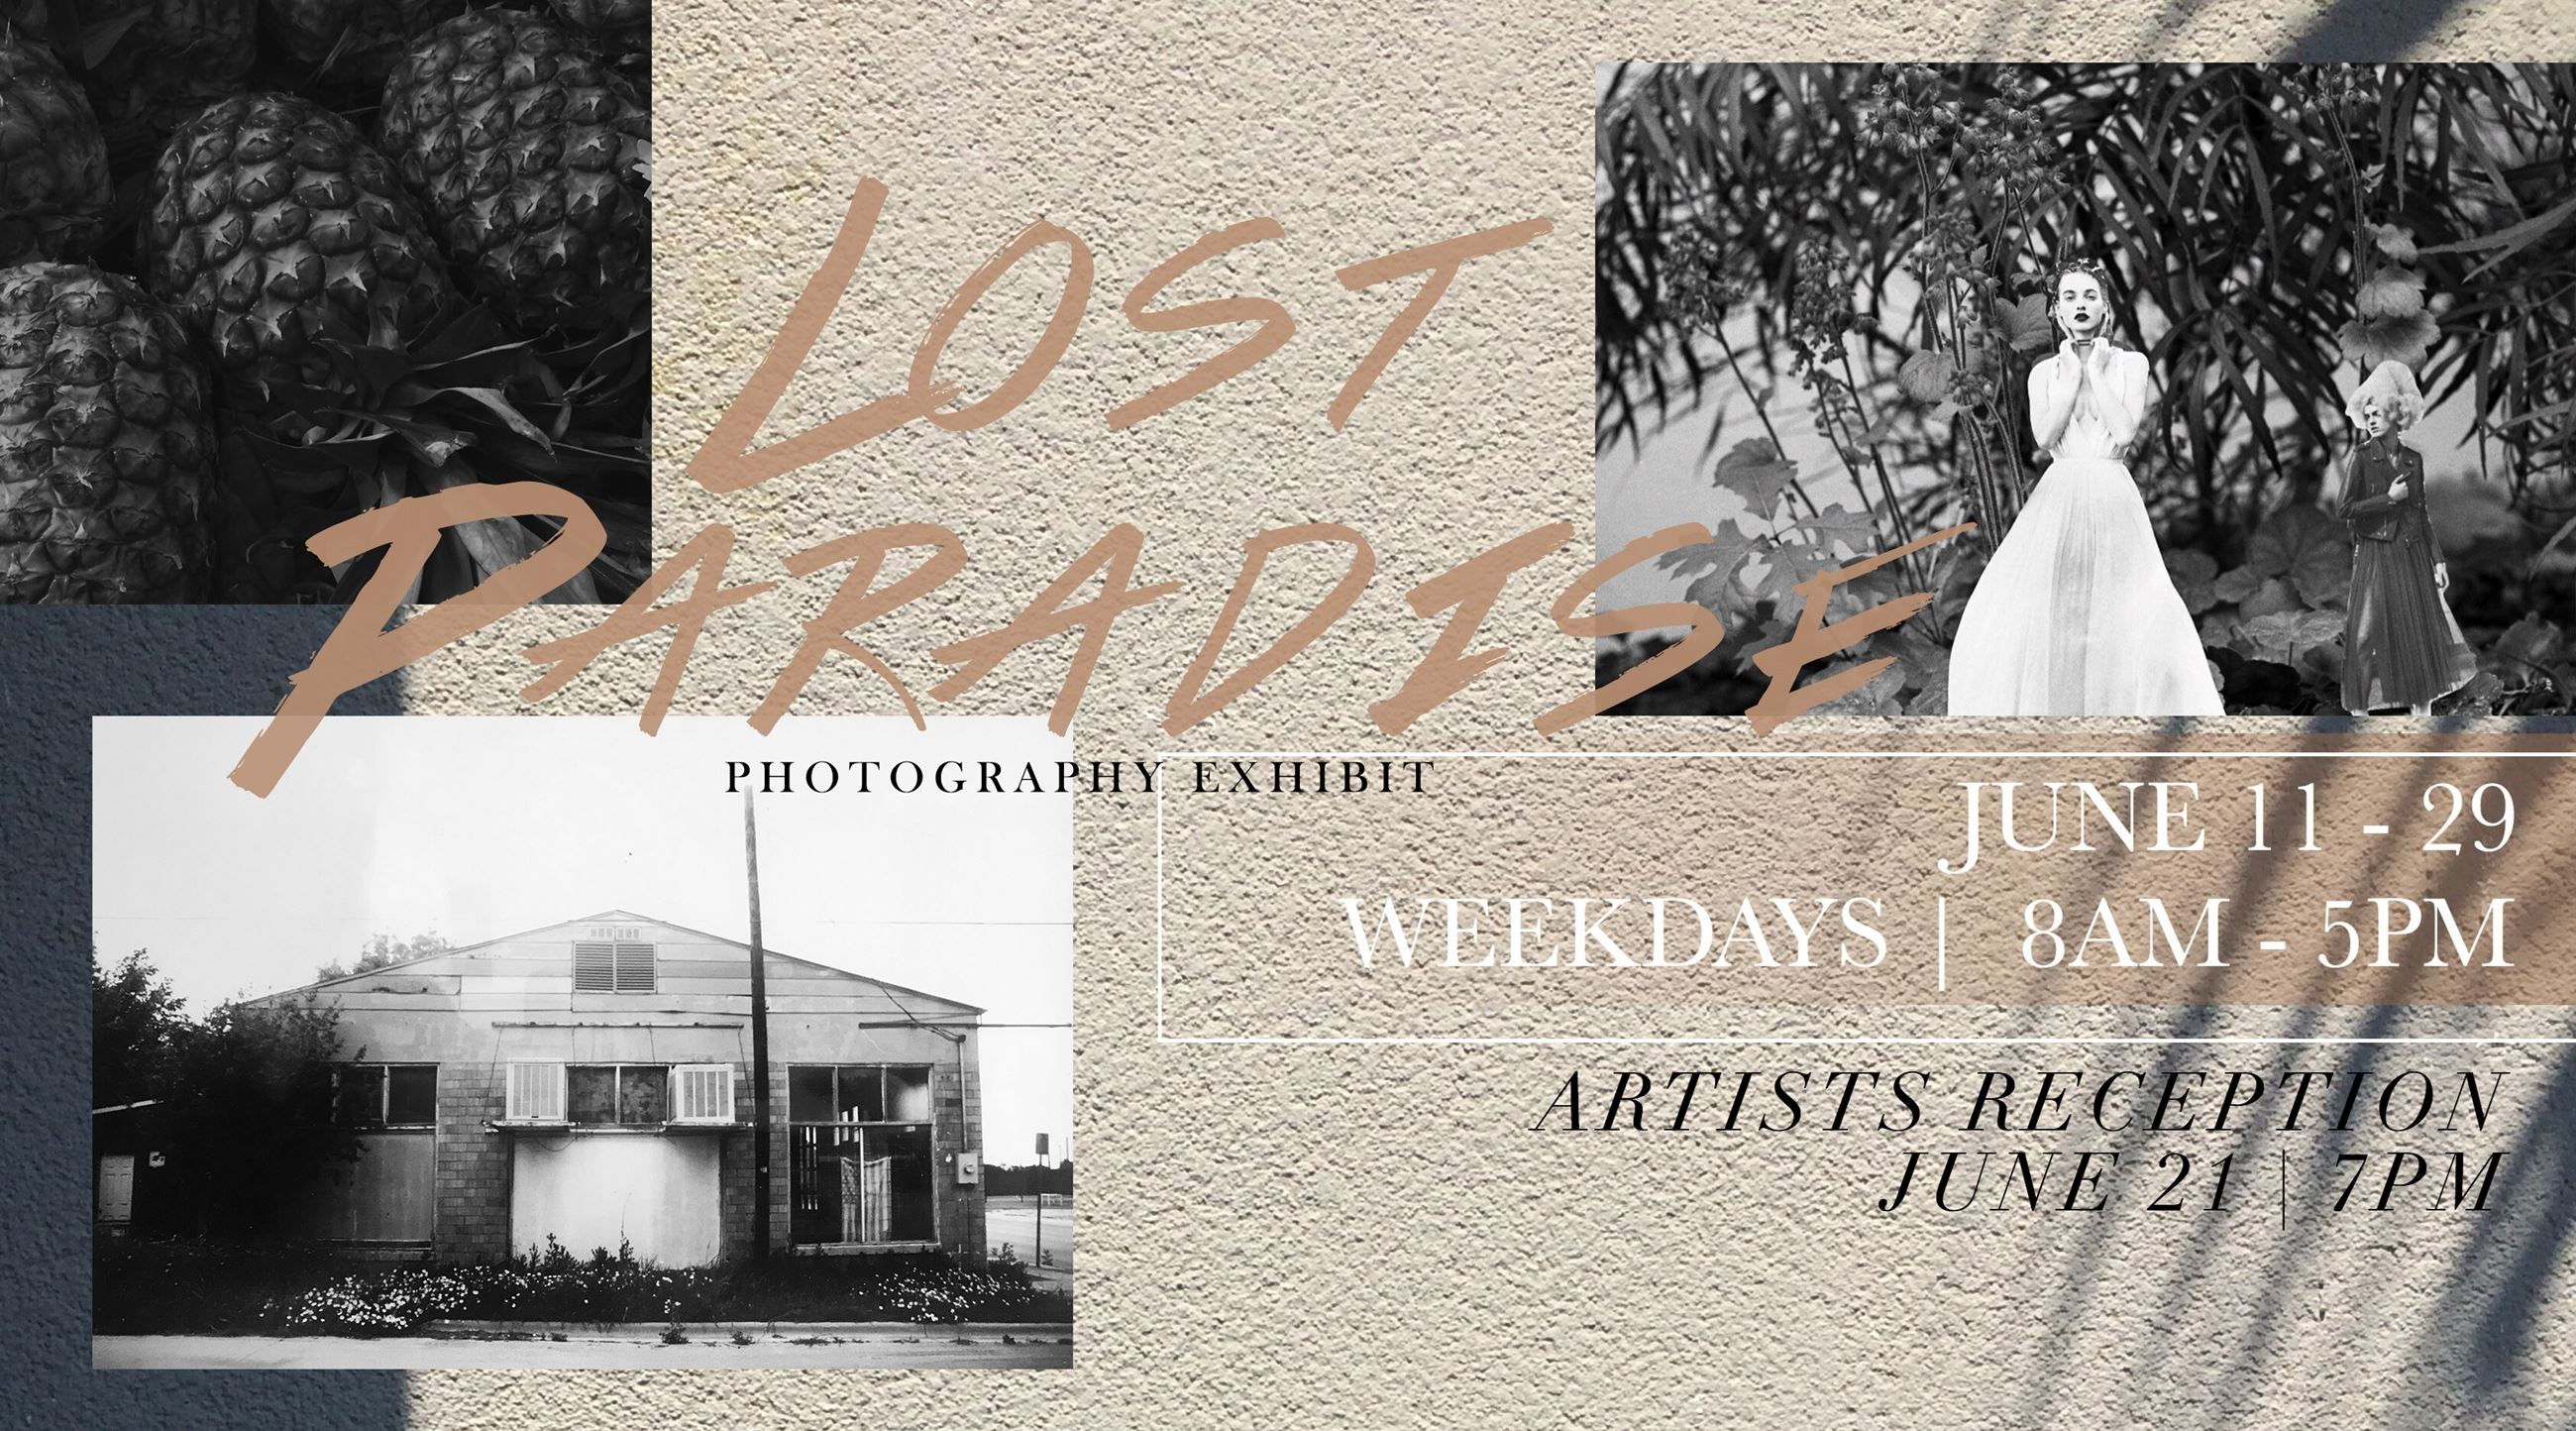 Photography Exhibit, Lost Paradise, June 11 - 29, Weekdays, 8 a.m. - 5 p.m. Reception on June 21st